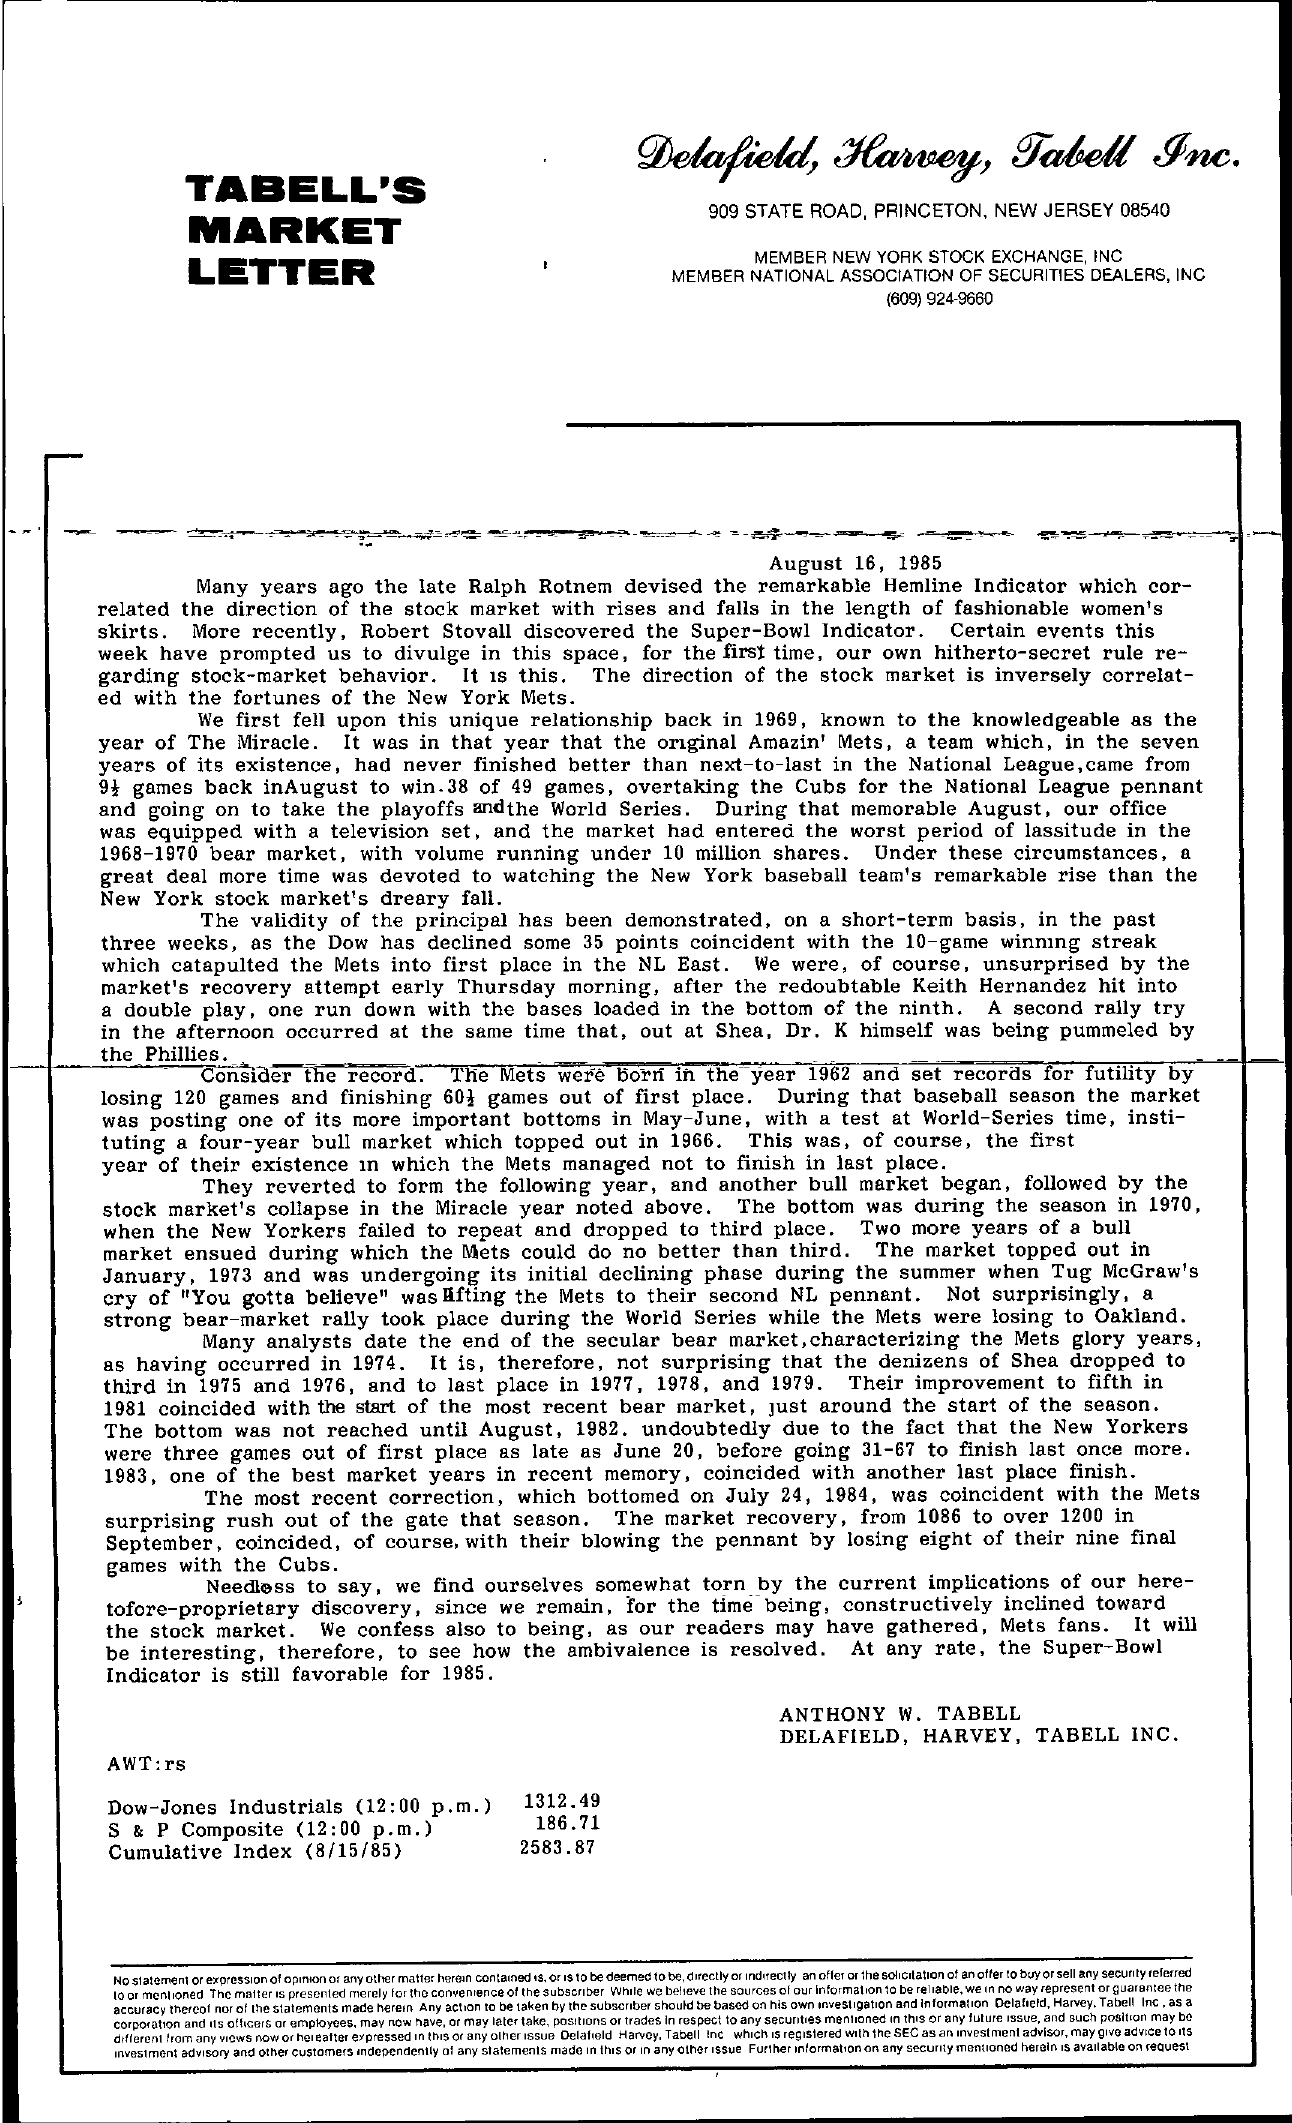 Tabell's Market Letter - August 16, 1985